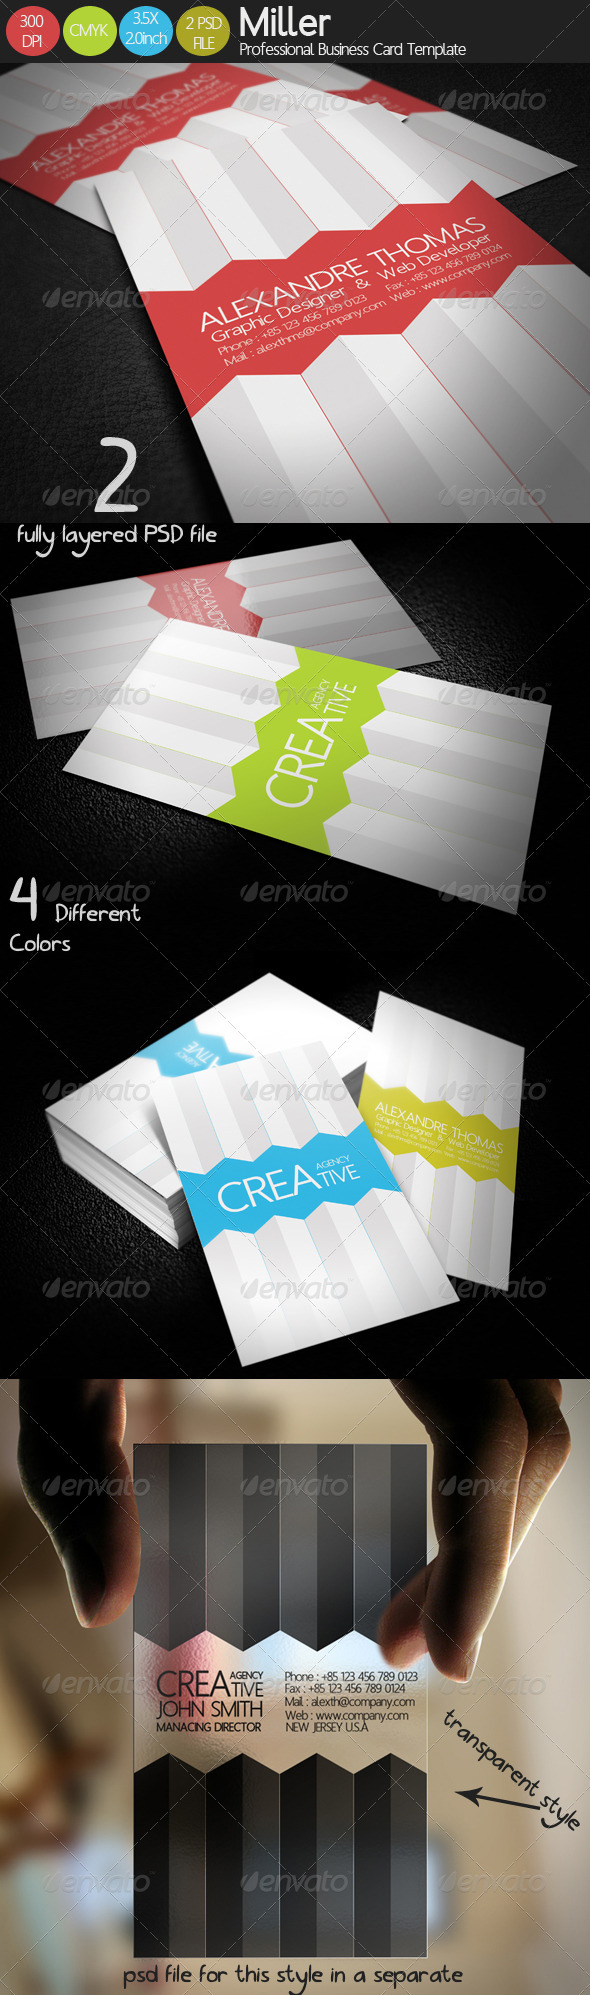 Miller Business Card - Creative Business Cards